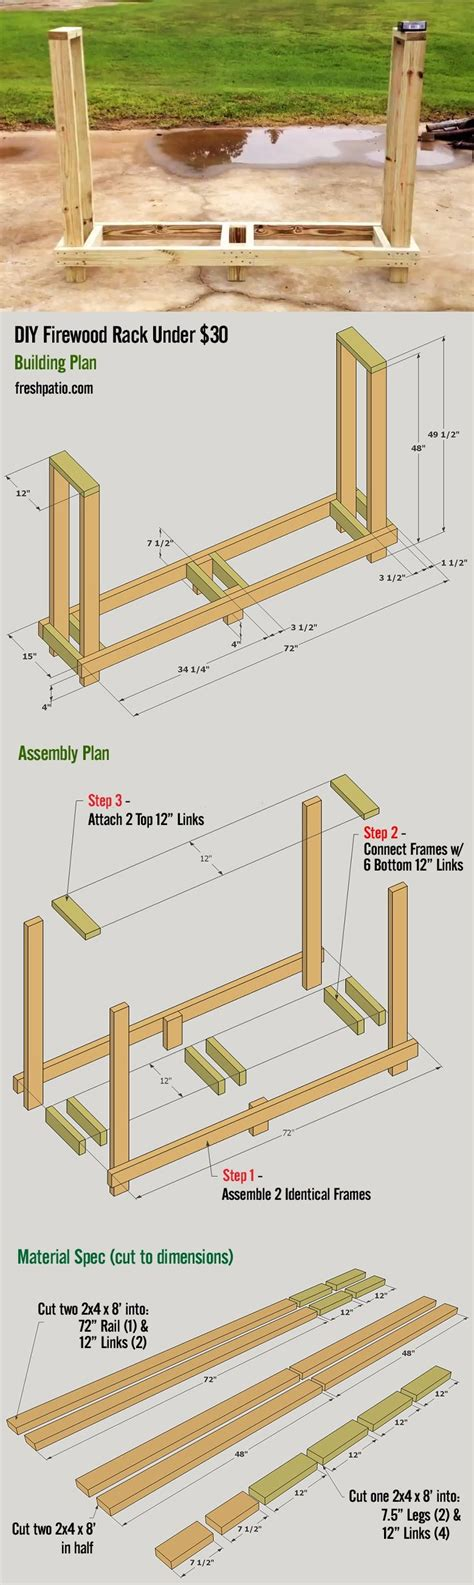 firewood rack plan easy  build    holds  rick  wood outdoor